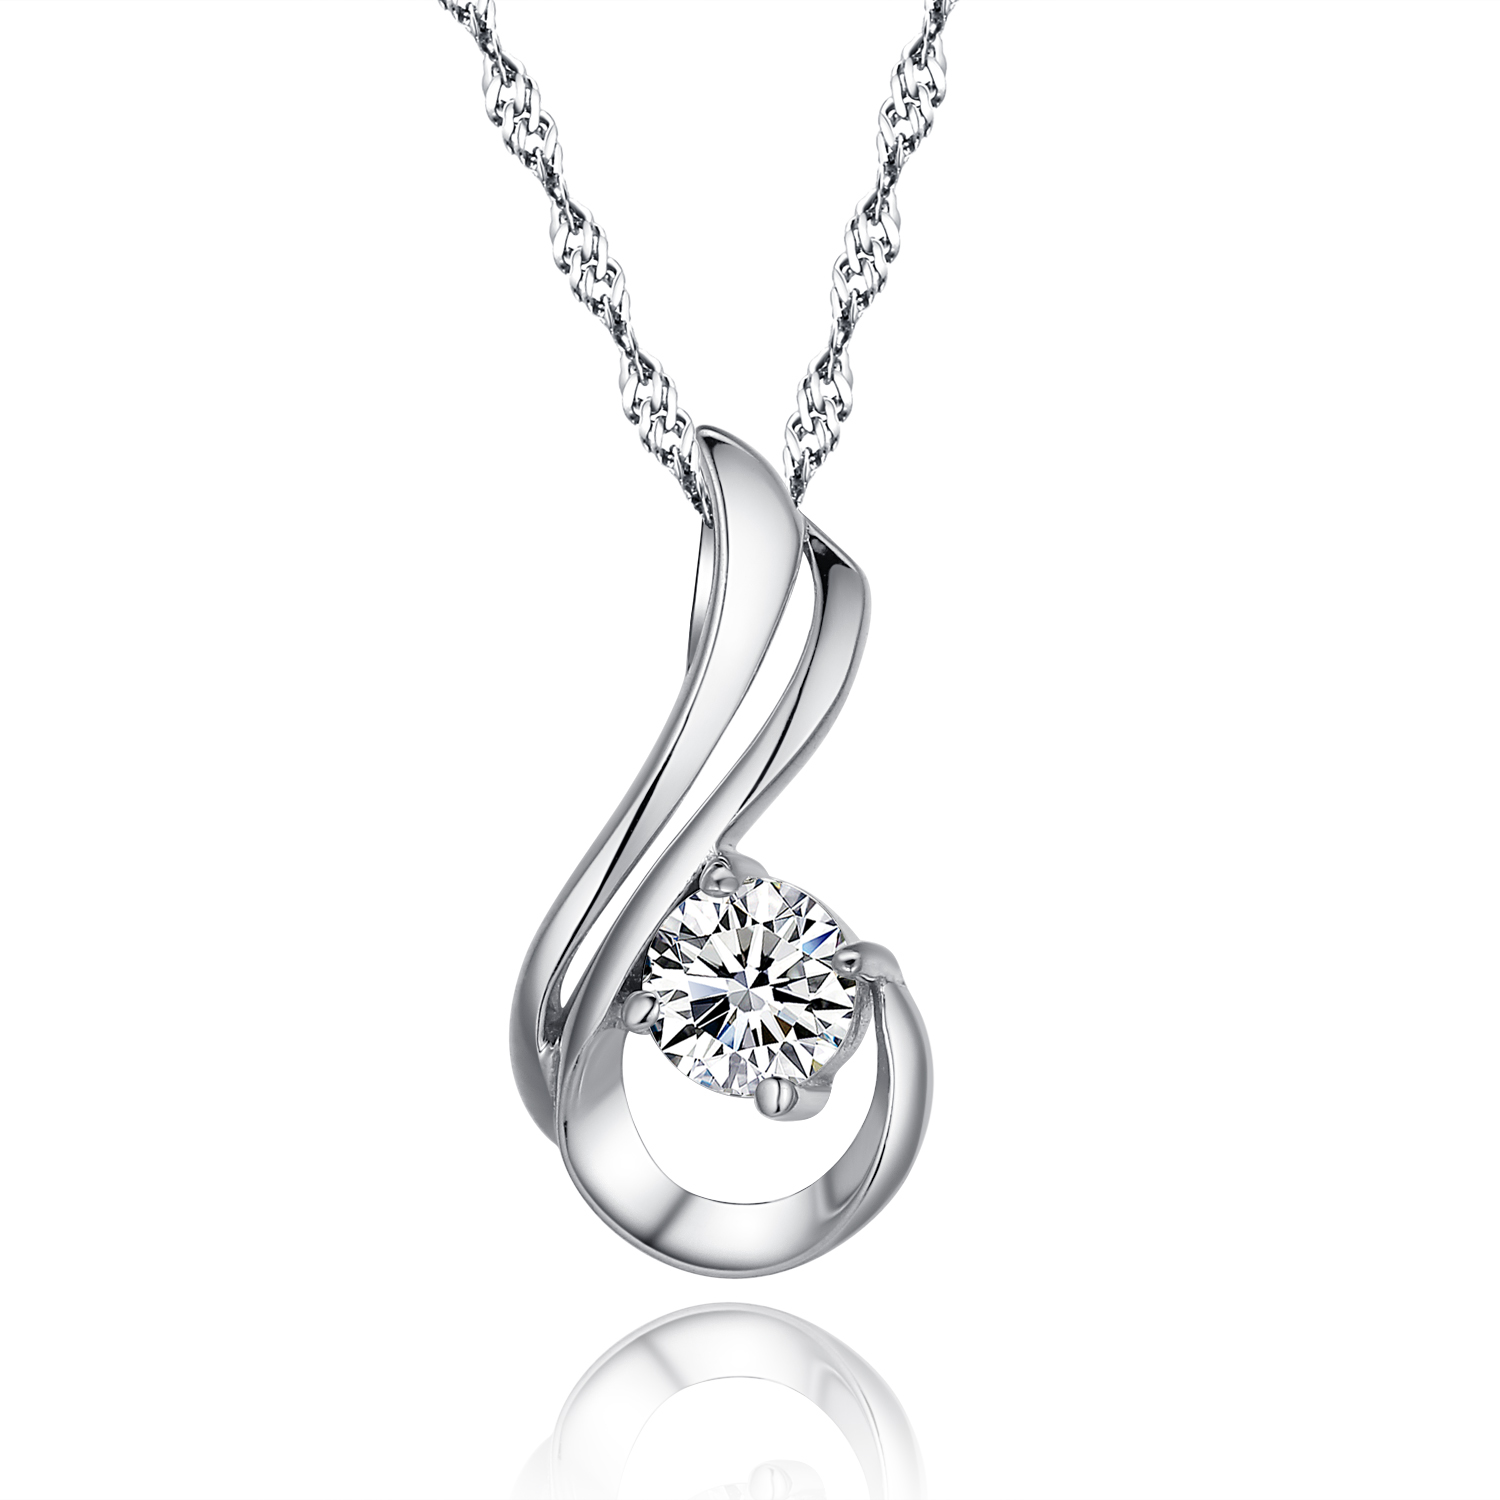 Genuine 100 925 sterling silver pendant necklace paved cubic love at first sight 925 sterling silver paved diamond pendant necklace 20 silver singapore chain with mozeypictures Images